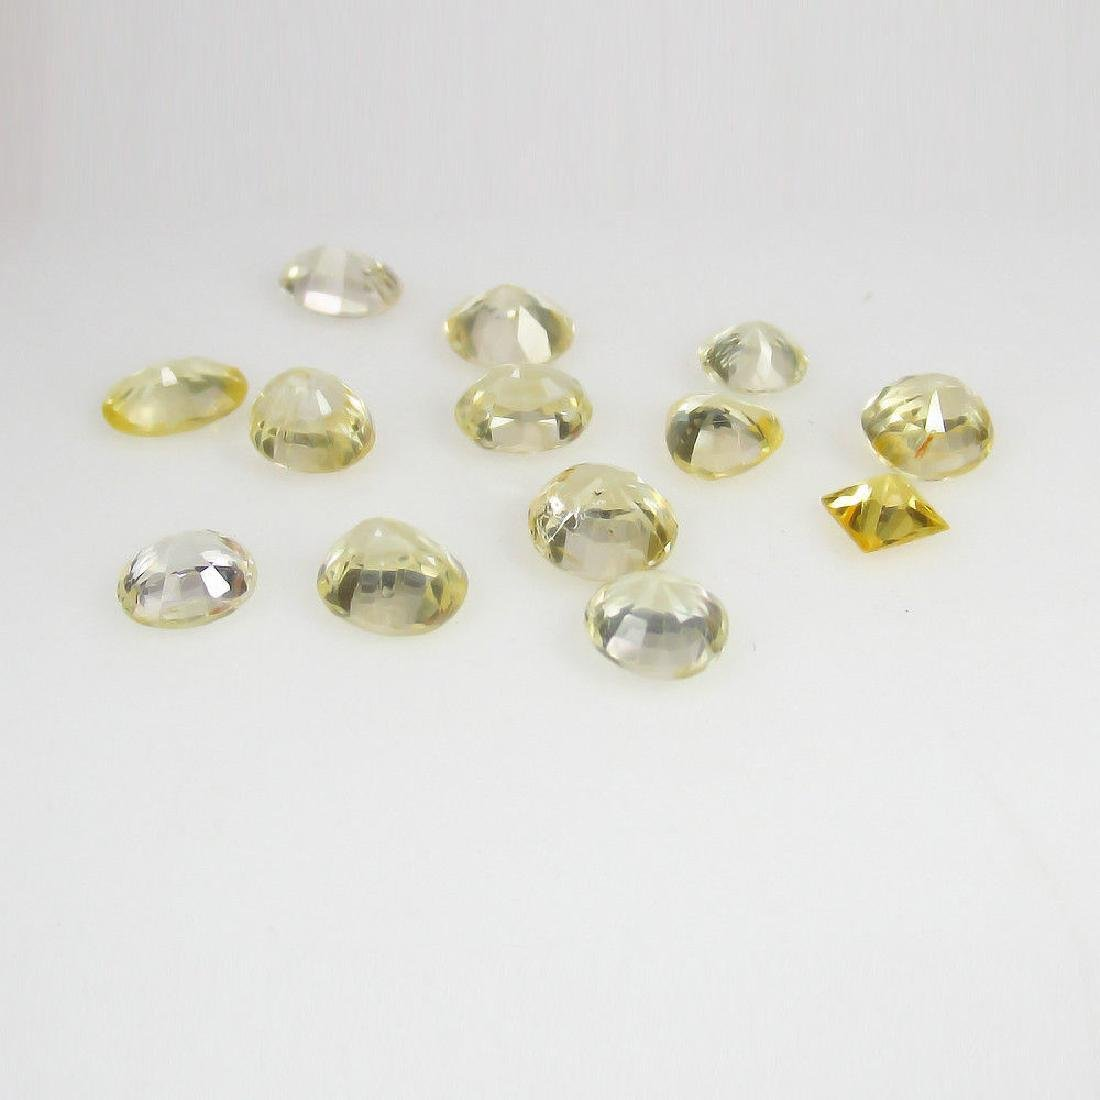 8.20 Ctw Natural Ceylon Yellow Sapphire Mixed Lot - 3